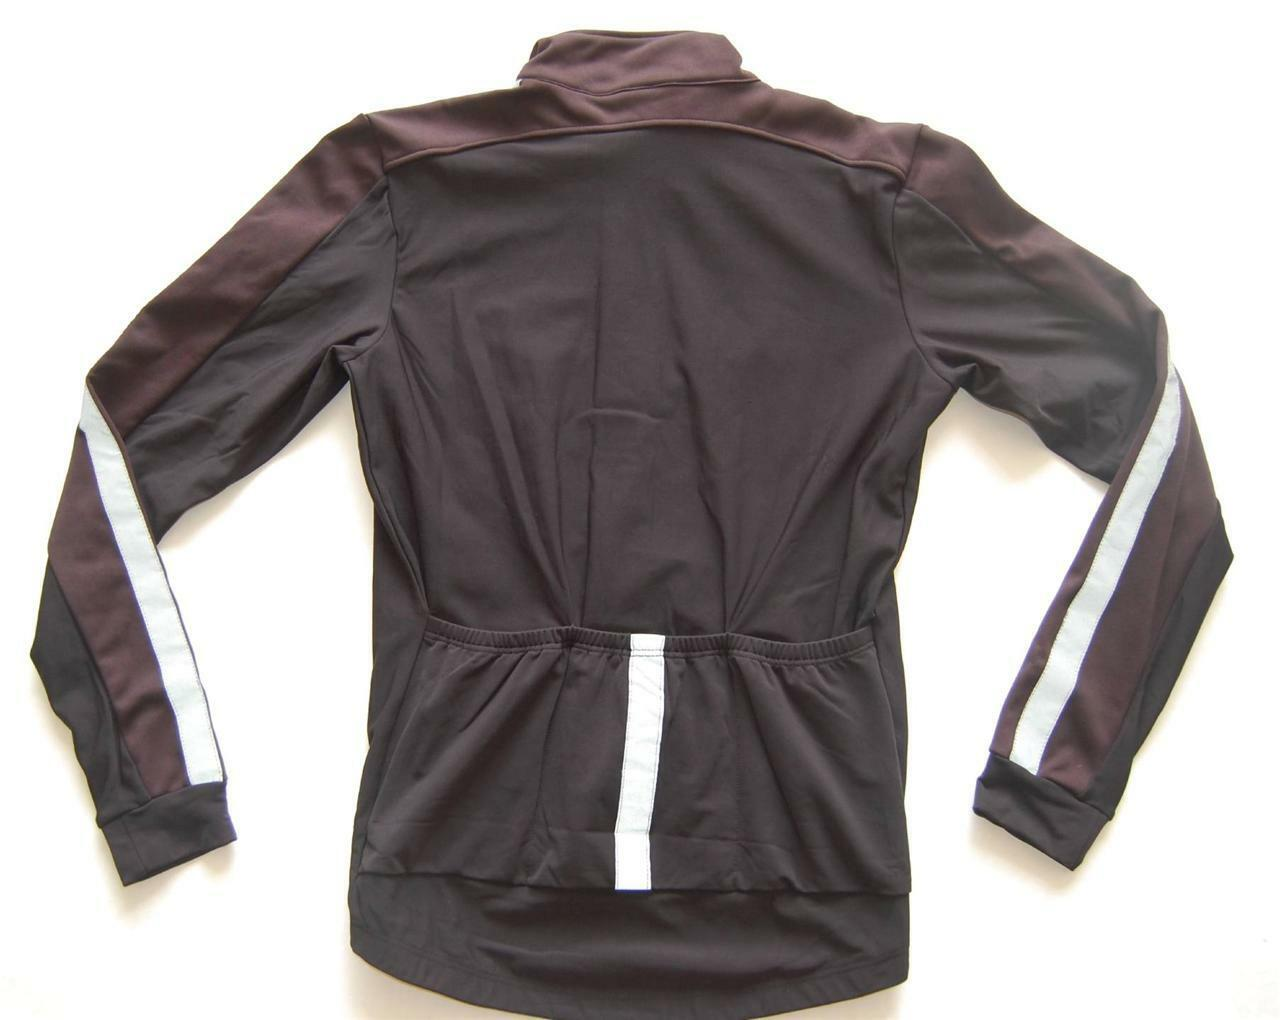 Jaggad Cycling Bike Fleeced Winter Windproof Reflector Jacket S M L XL XXL BLACK